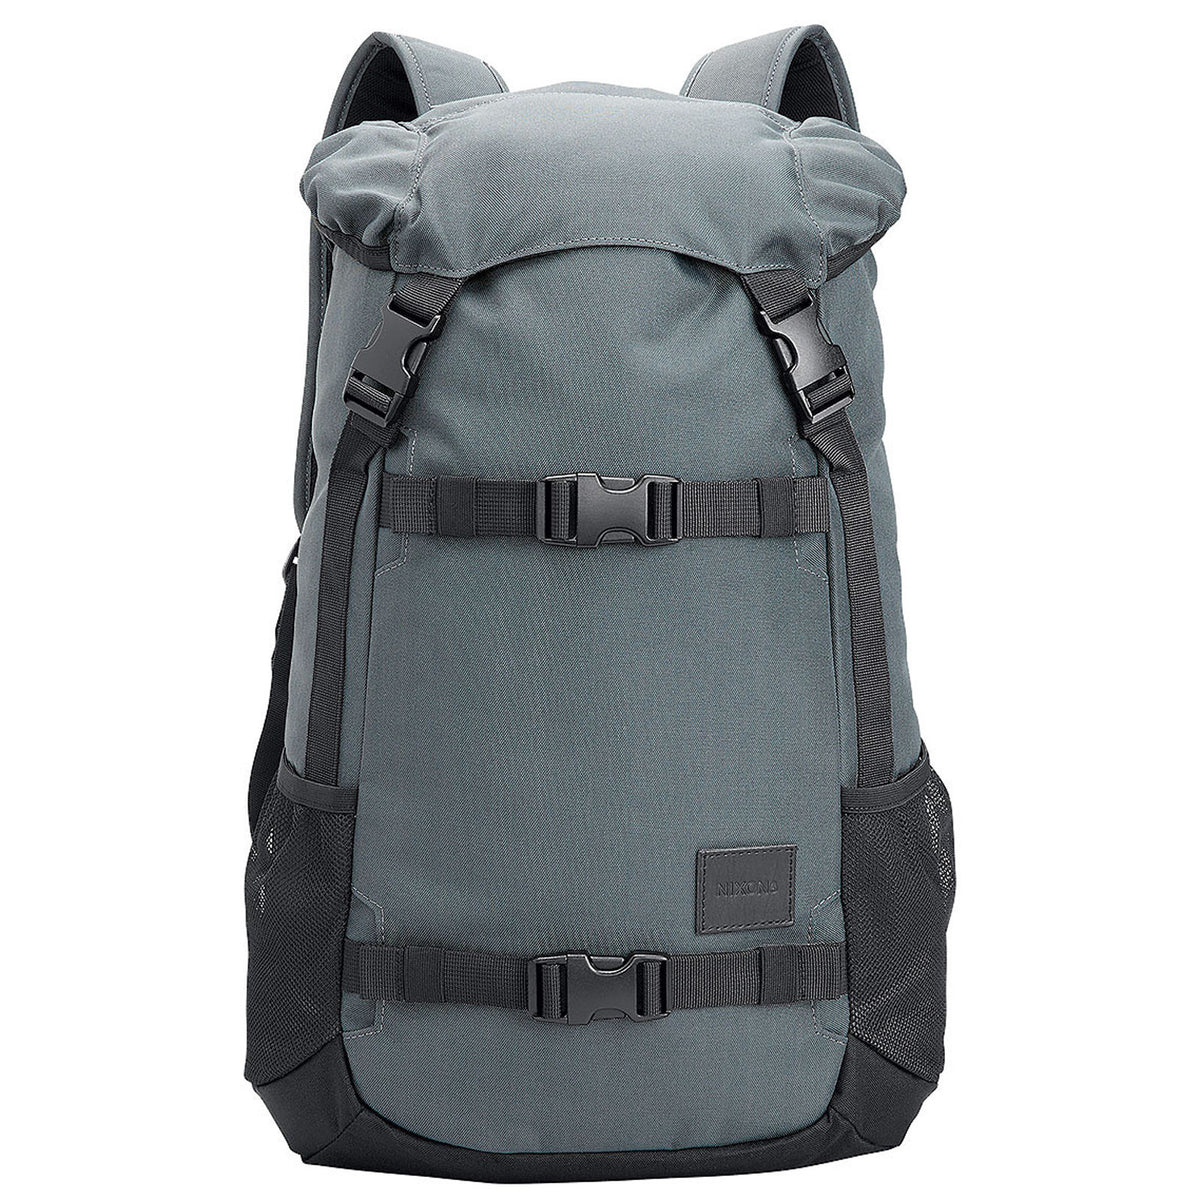 Nixon: Landlock Backpack SE - Dark Grey